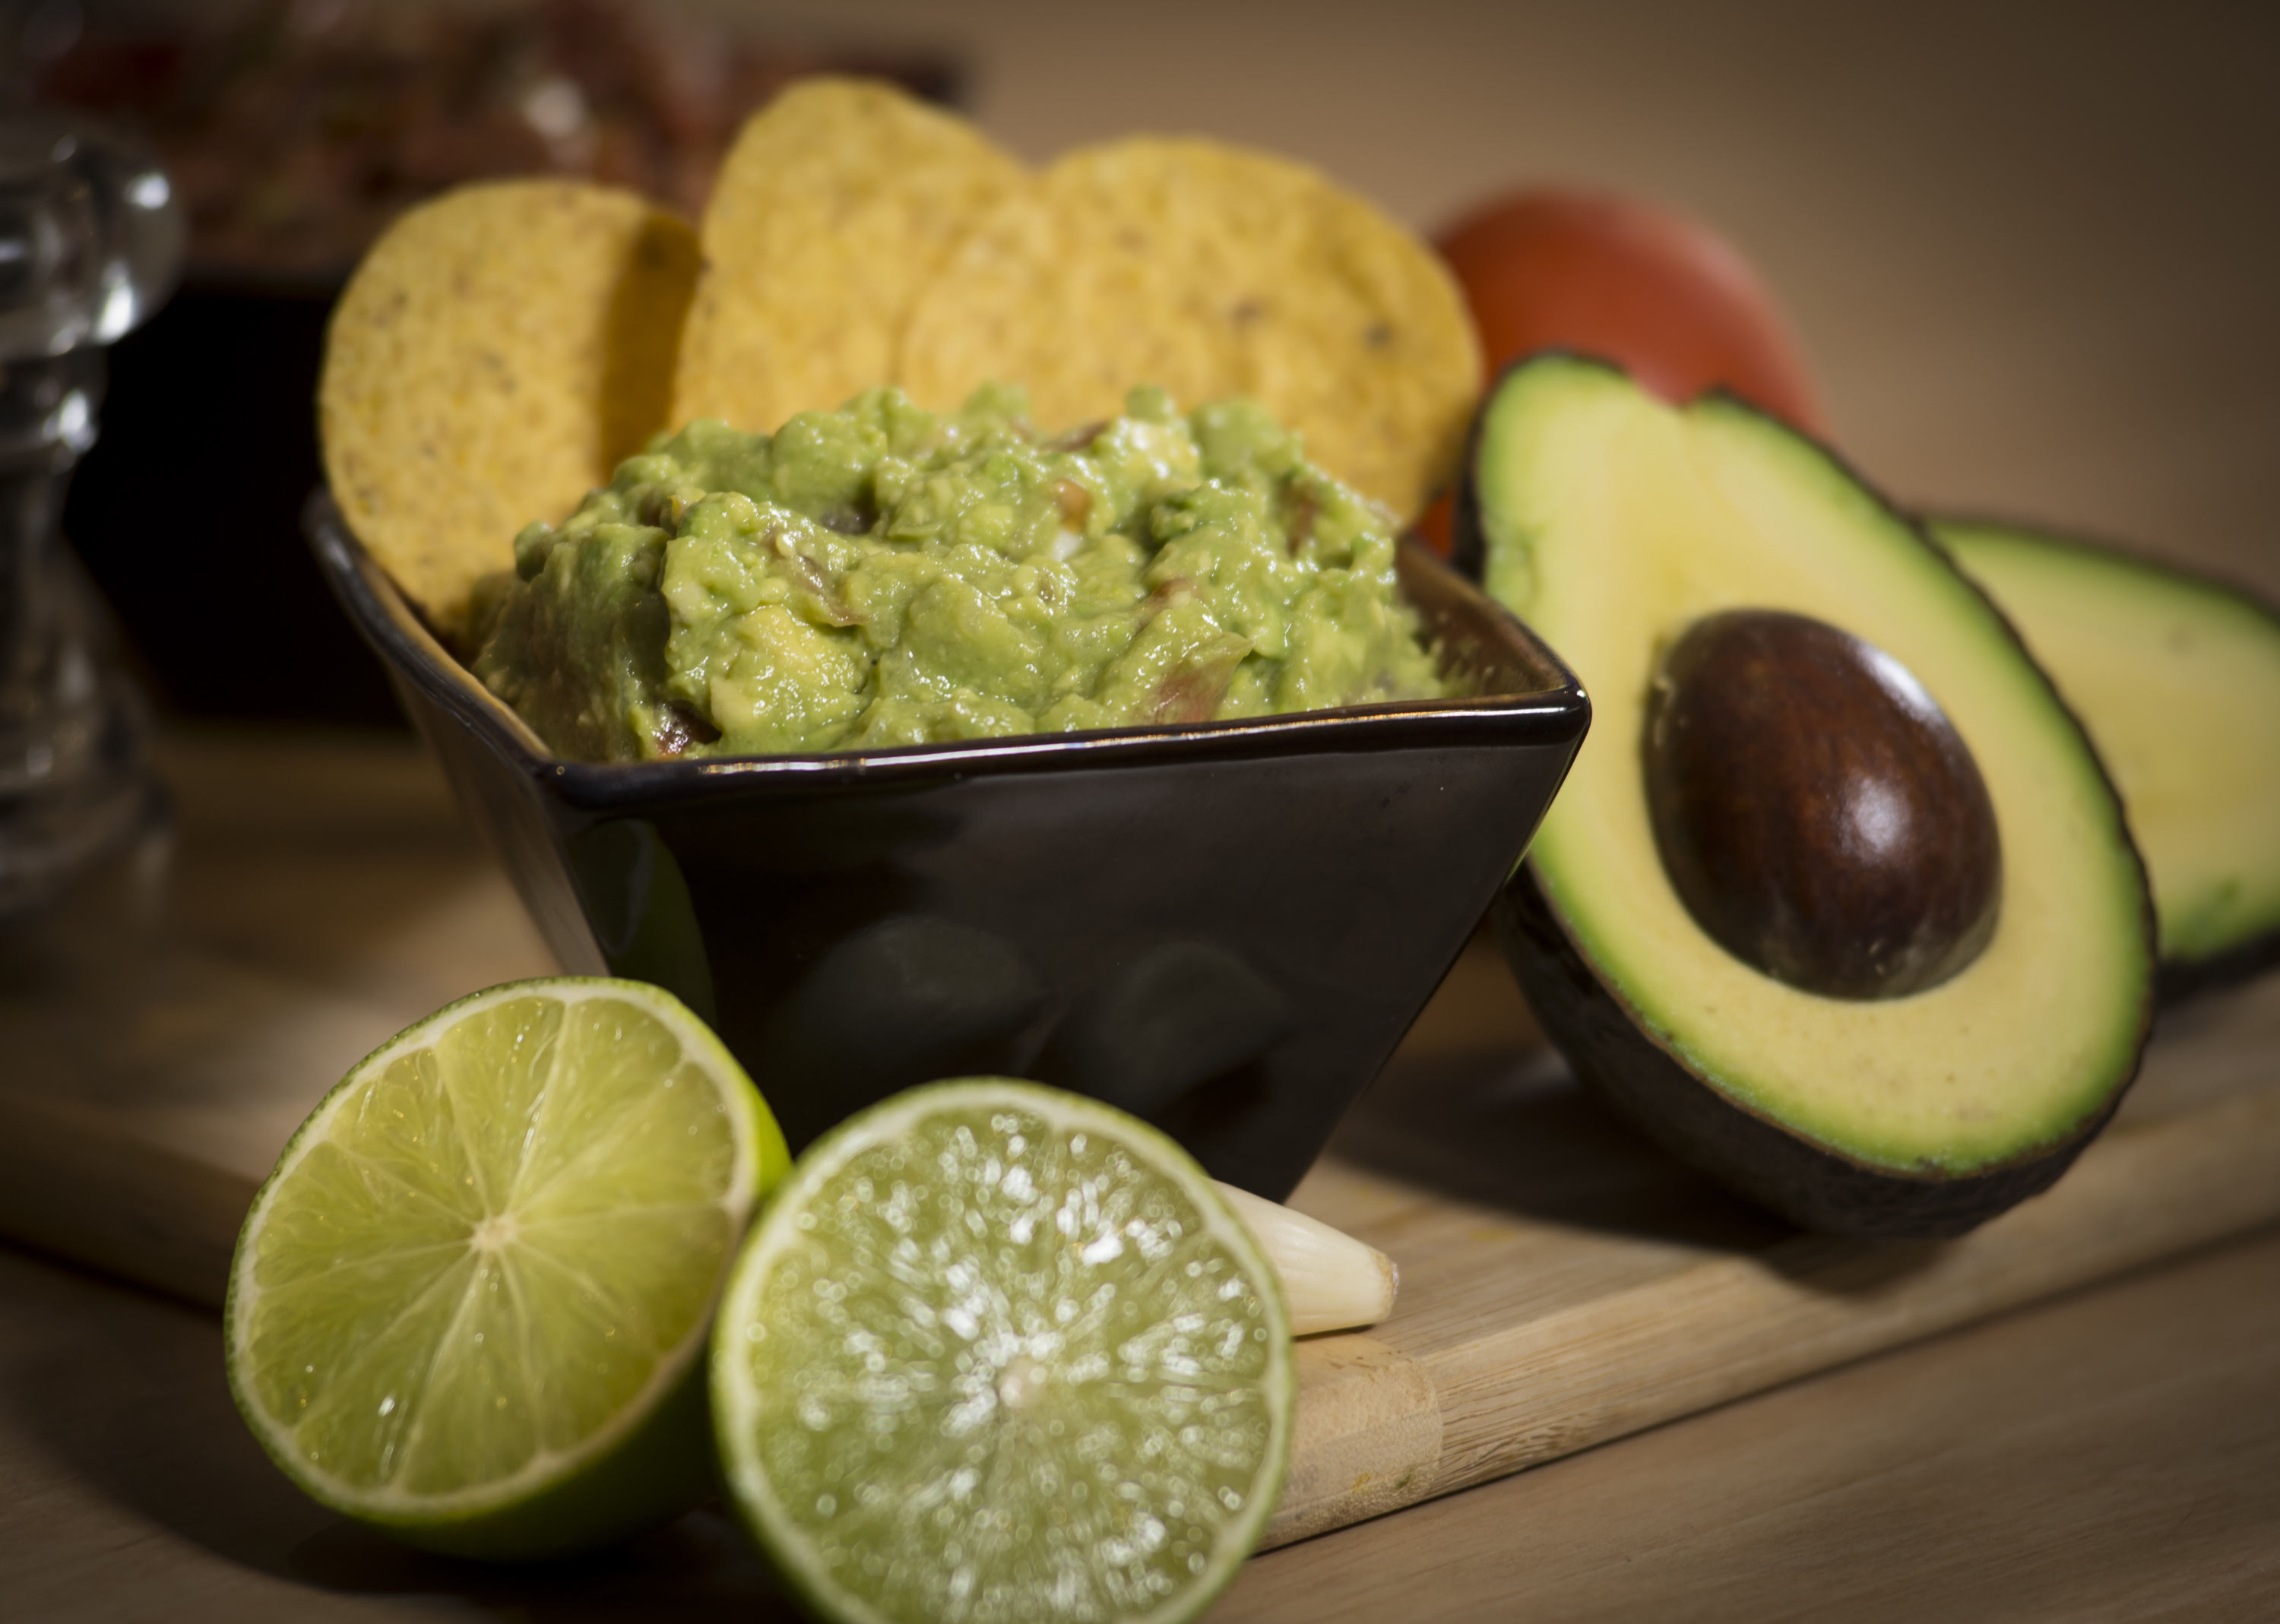 Recipe of the week: Guacamole